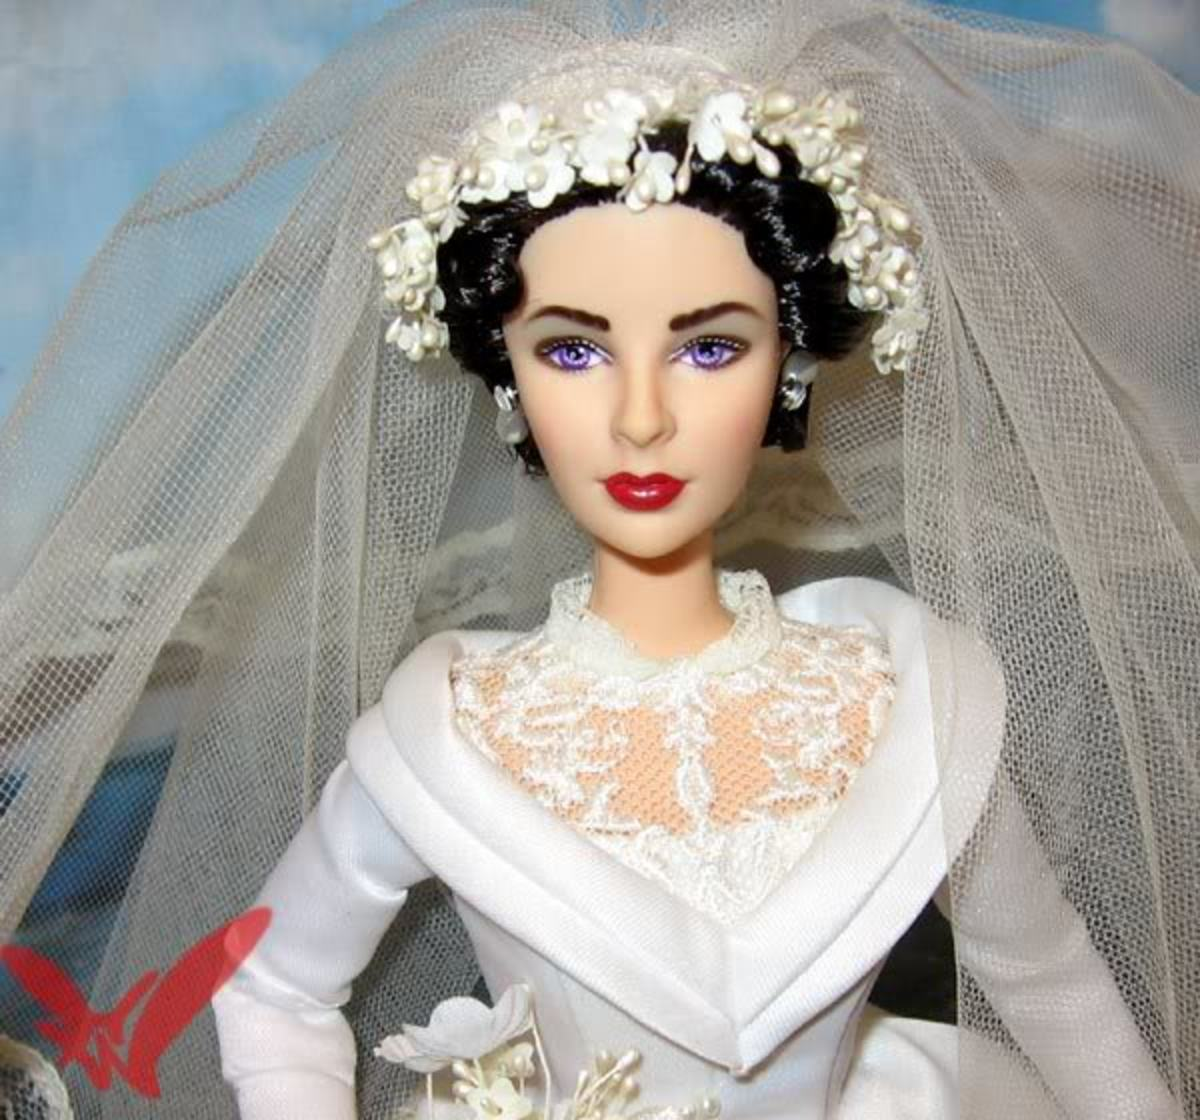 Elizabeth Taylor Barbie Doll in bridal attire and beautiful bridal head piece and veil